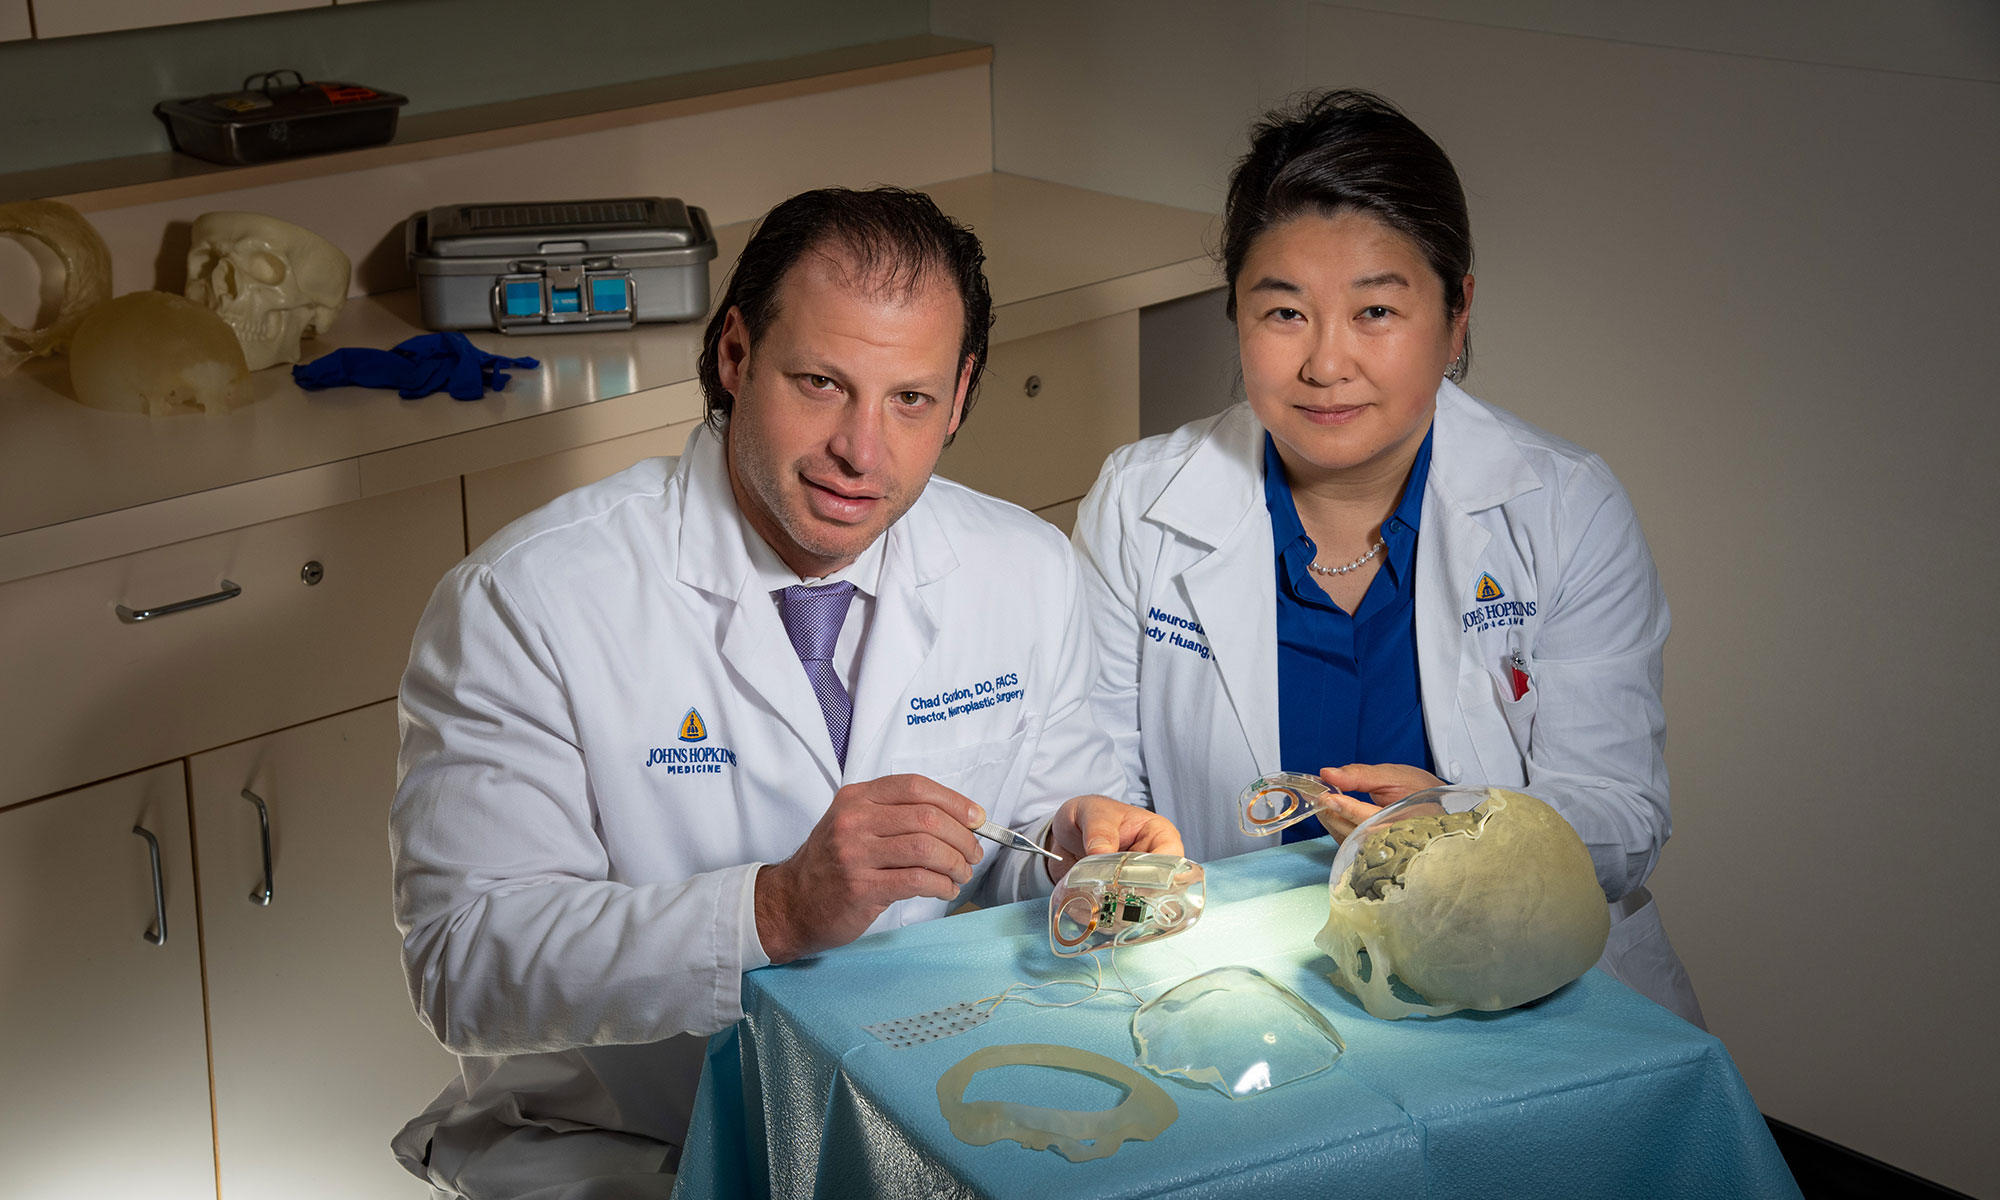 Craniofacial plastic surgeon Chad Gordon and neurosurgeon Judy Huang, wearing lab coats, hold neuroplastic devices in their hands that consist of clear plastic implants with electric parts embedded in them.